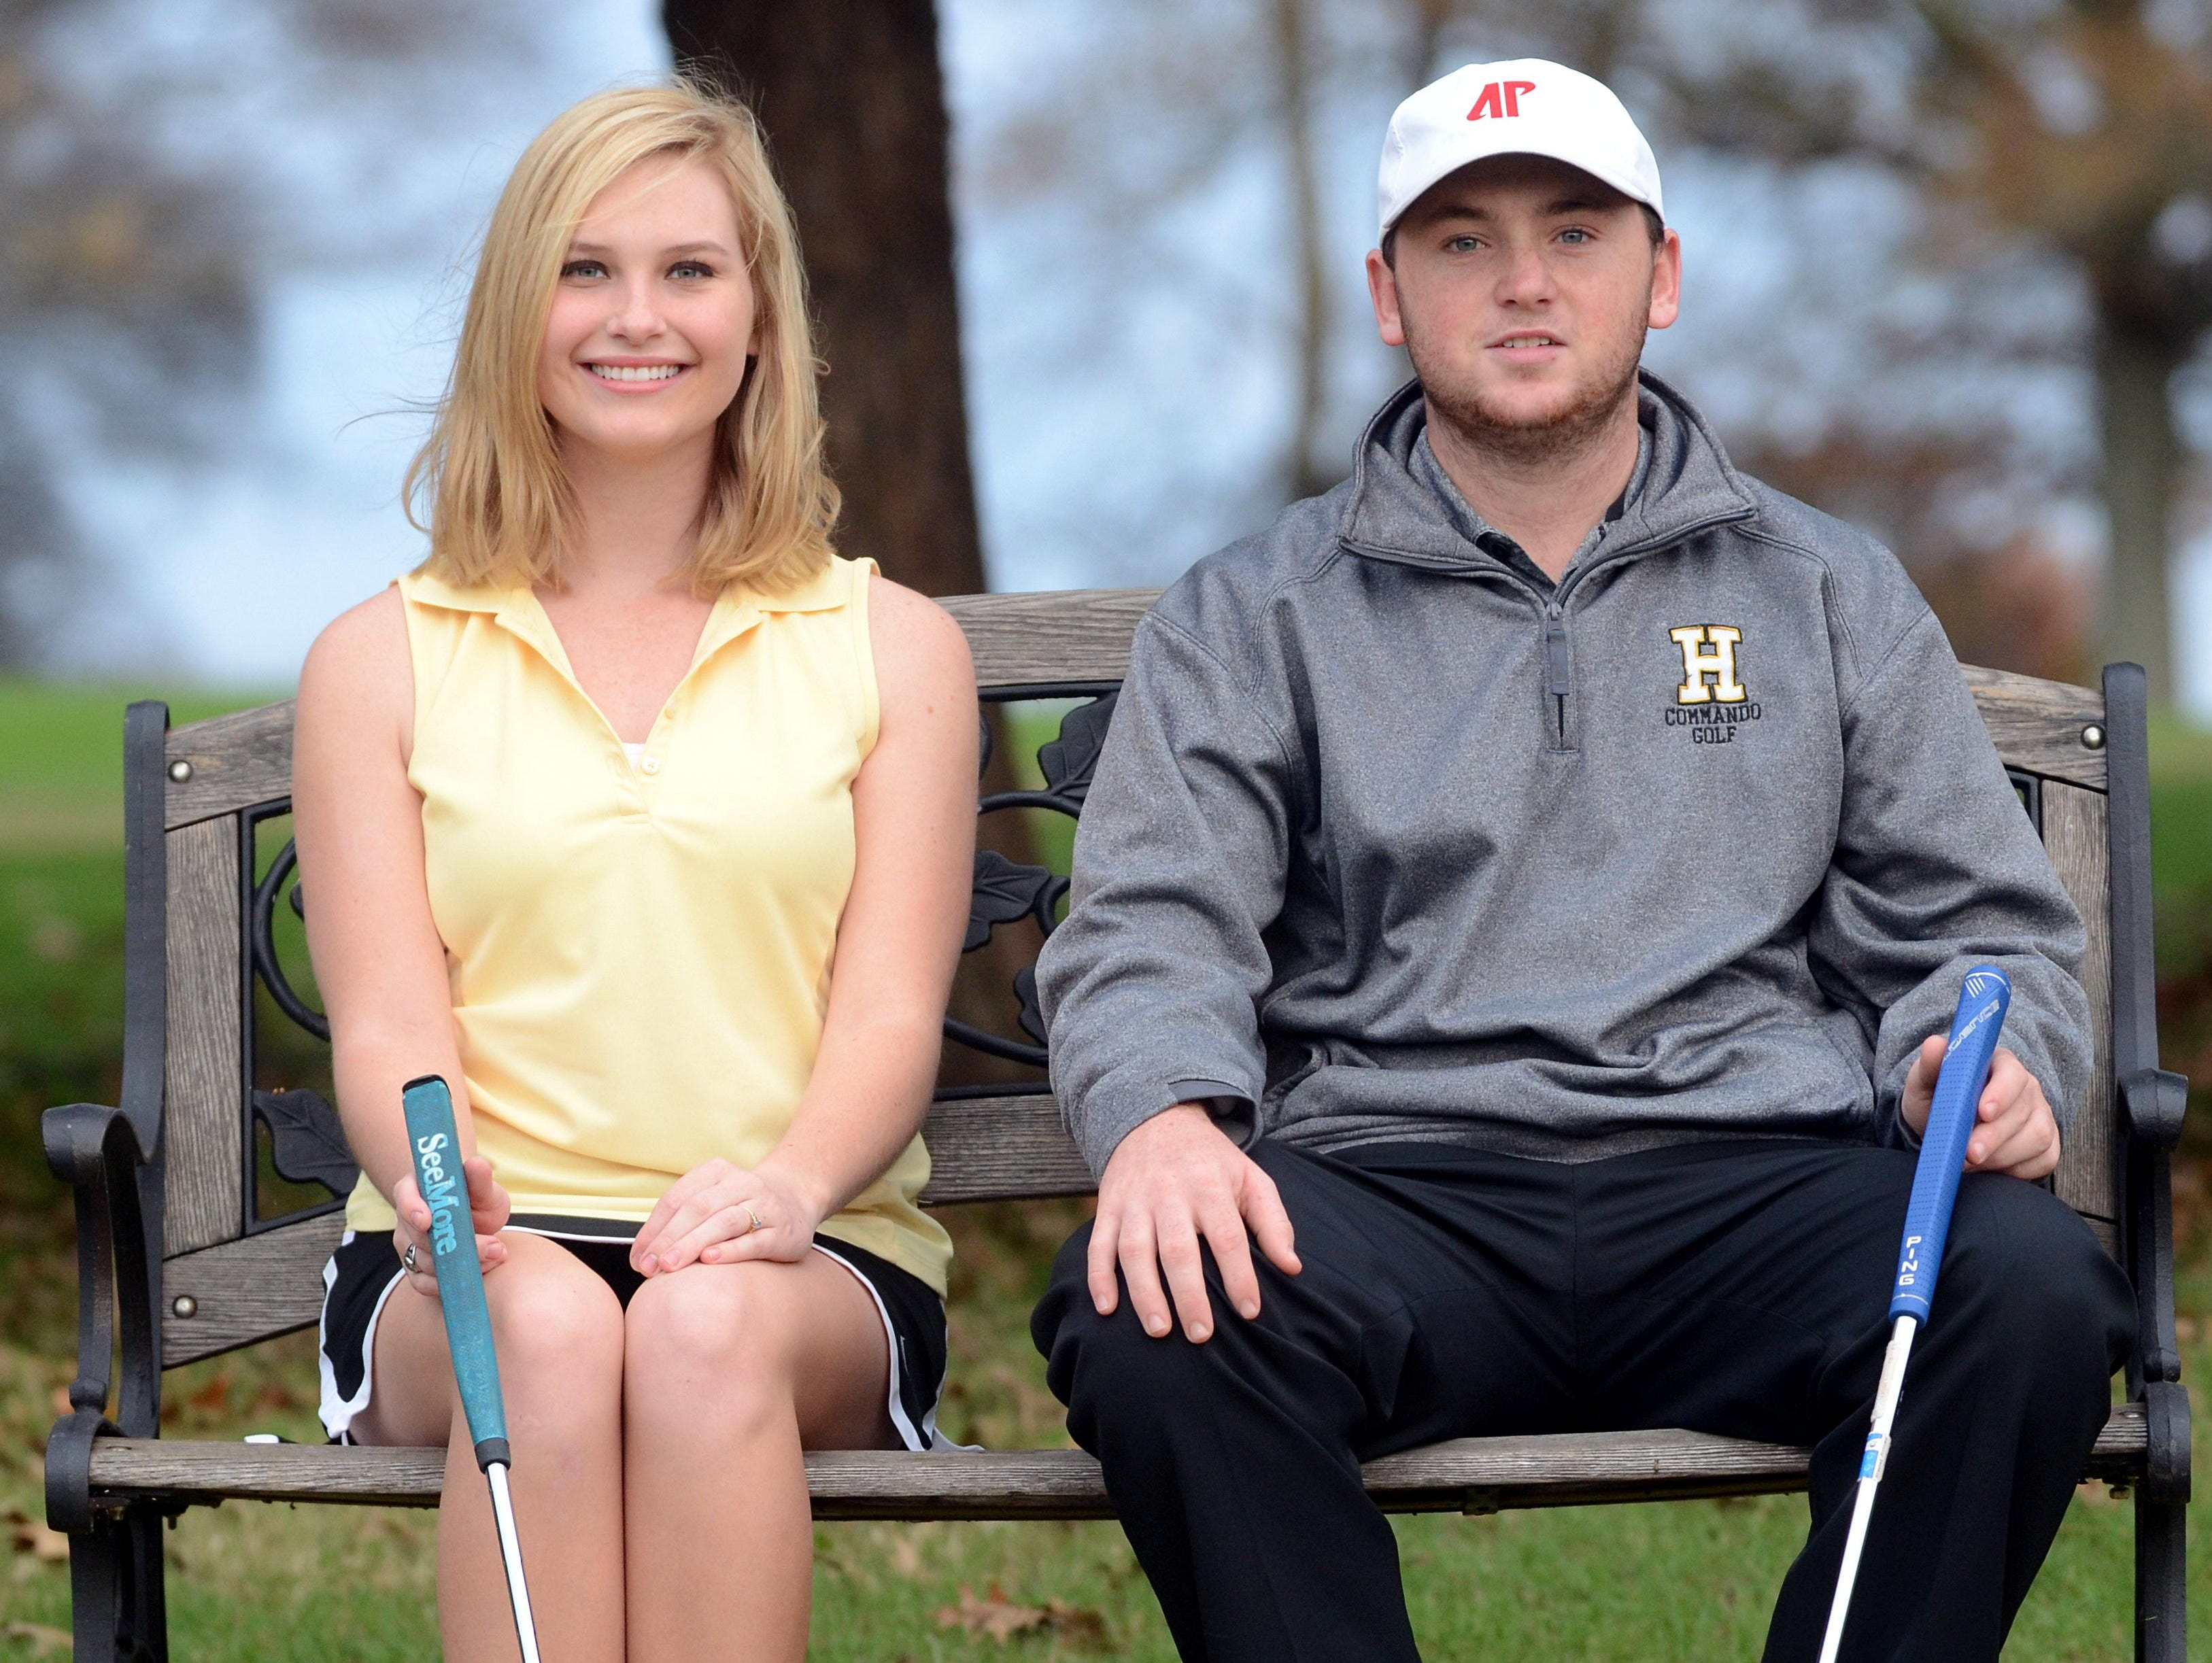 Hendersonville High senior golfers Meghann Stamps and Austin Lancaster have each signed a letter-of-intent to continue their playing career at Austin Peay State University.